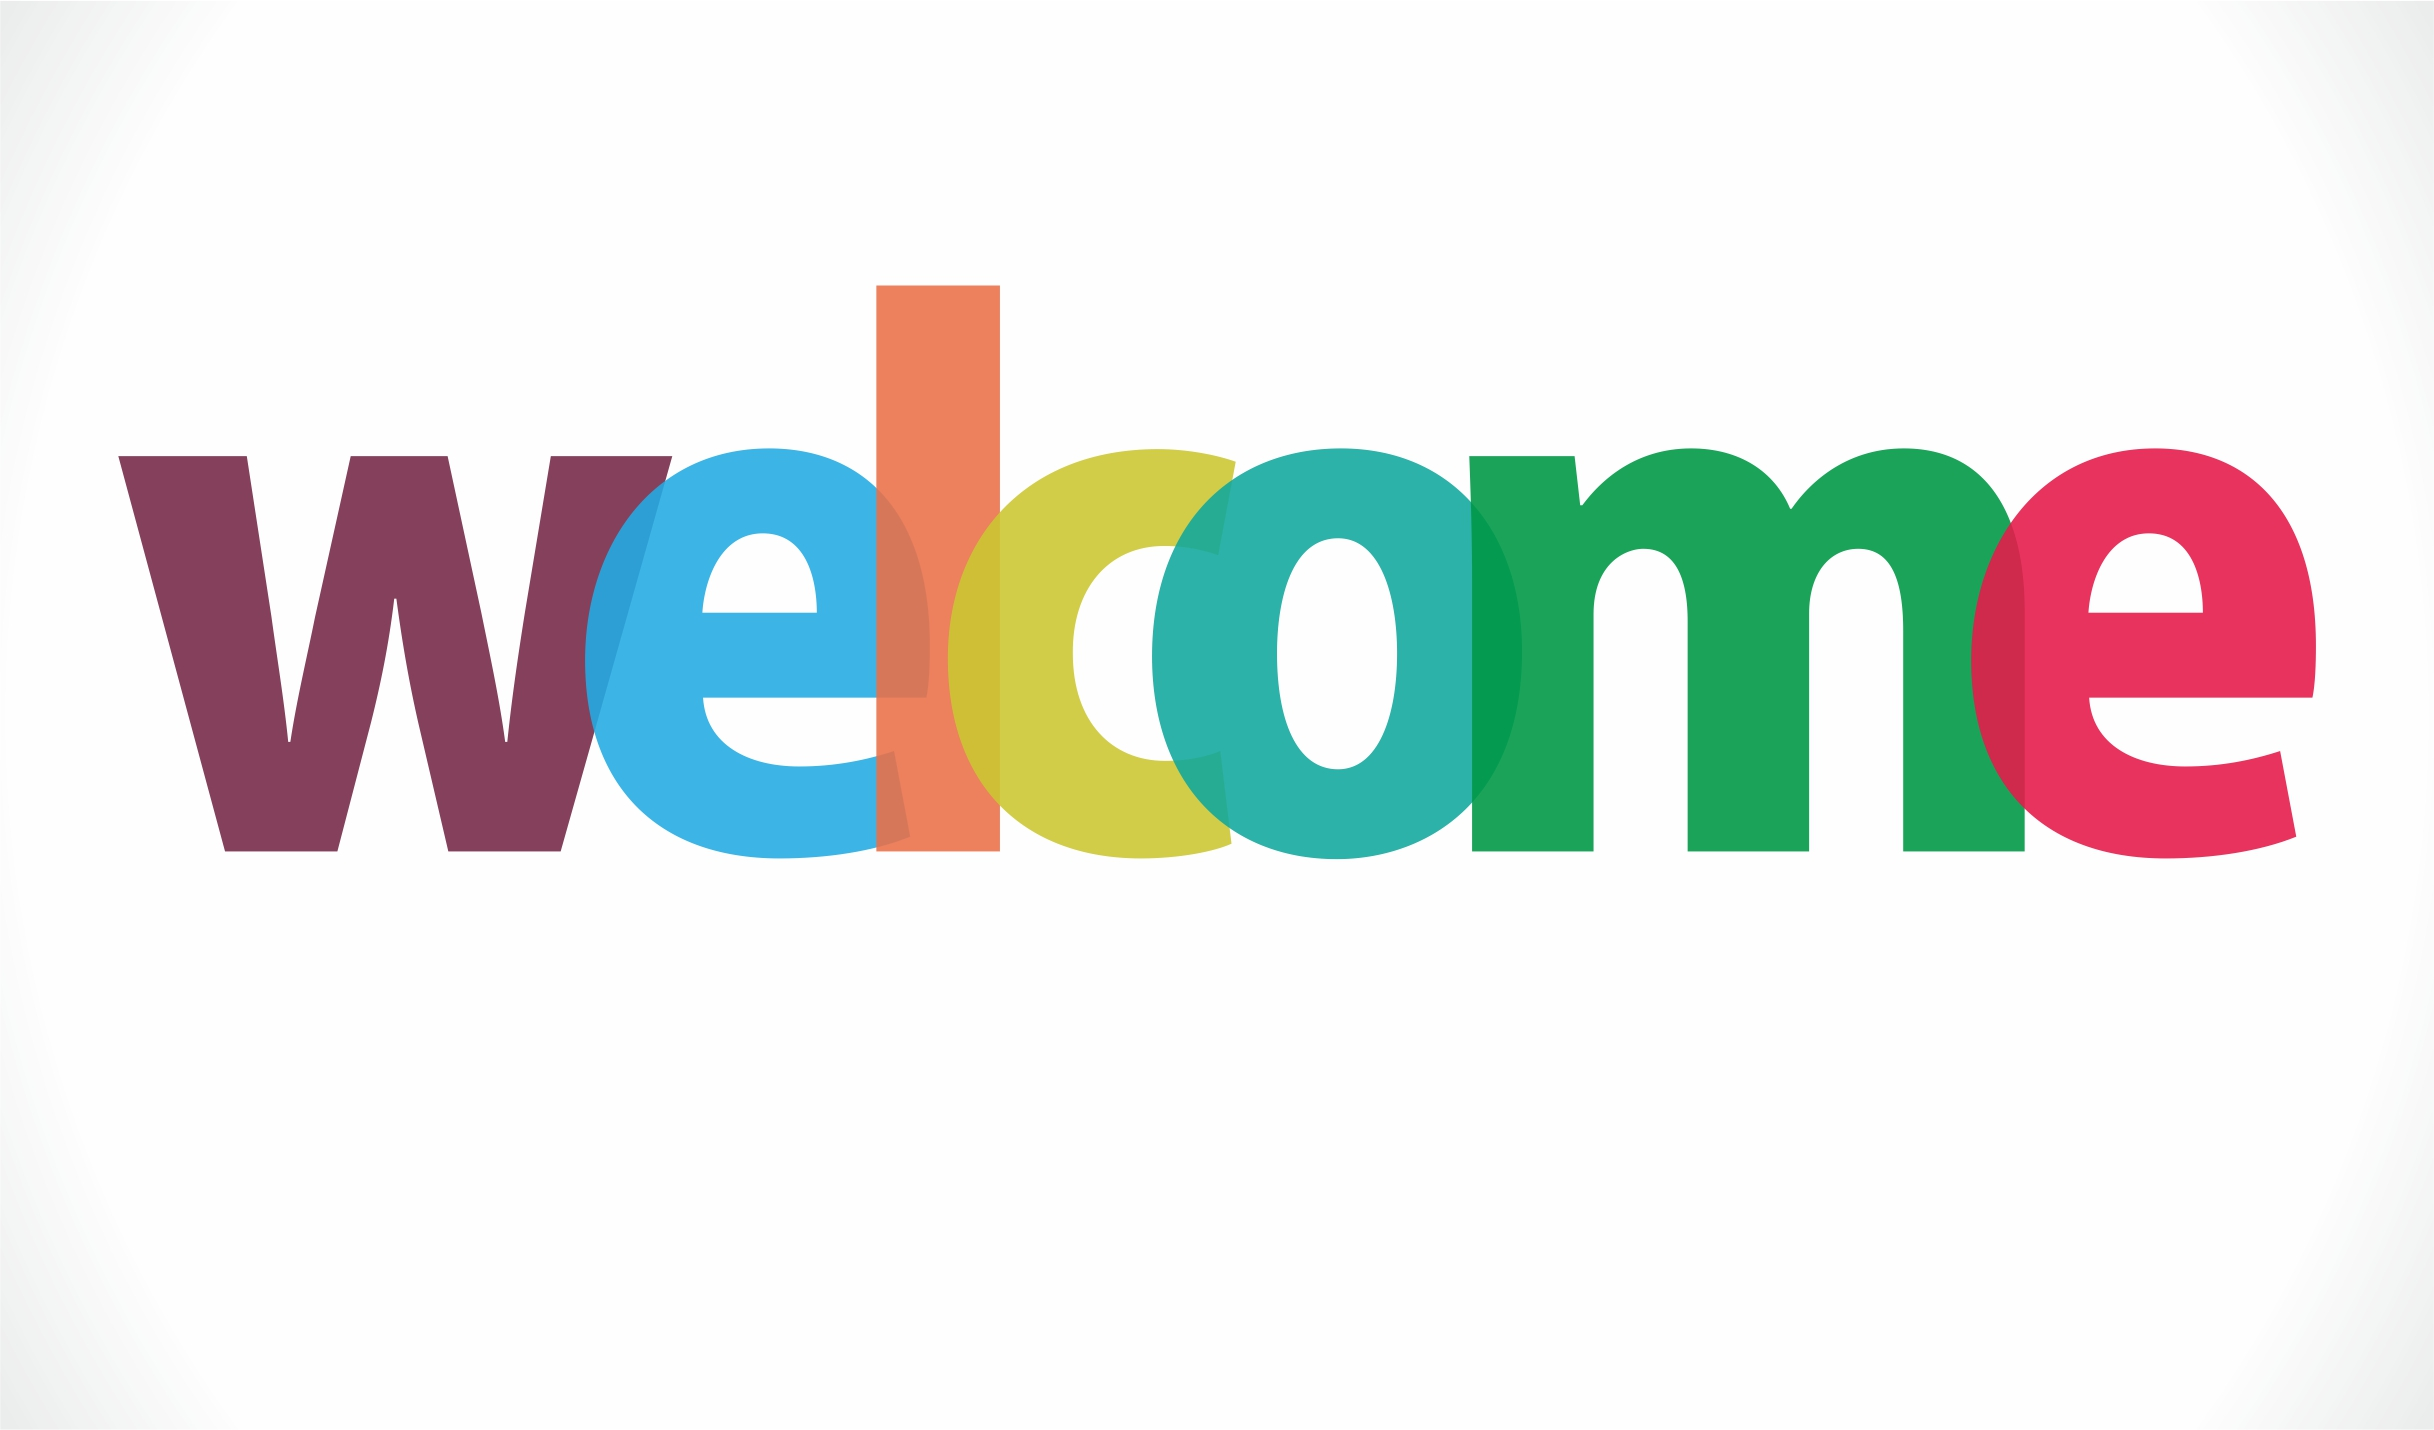 mydesigns4u-welcome-banner.jpg